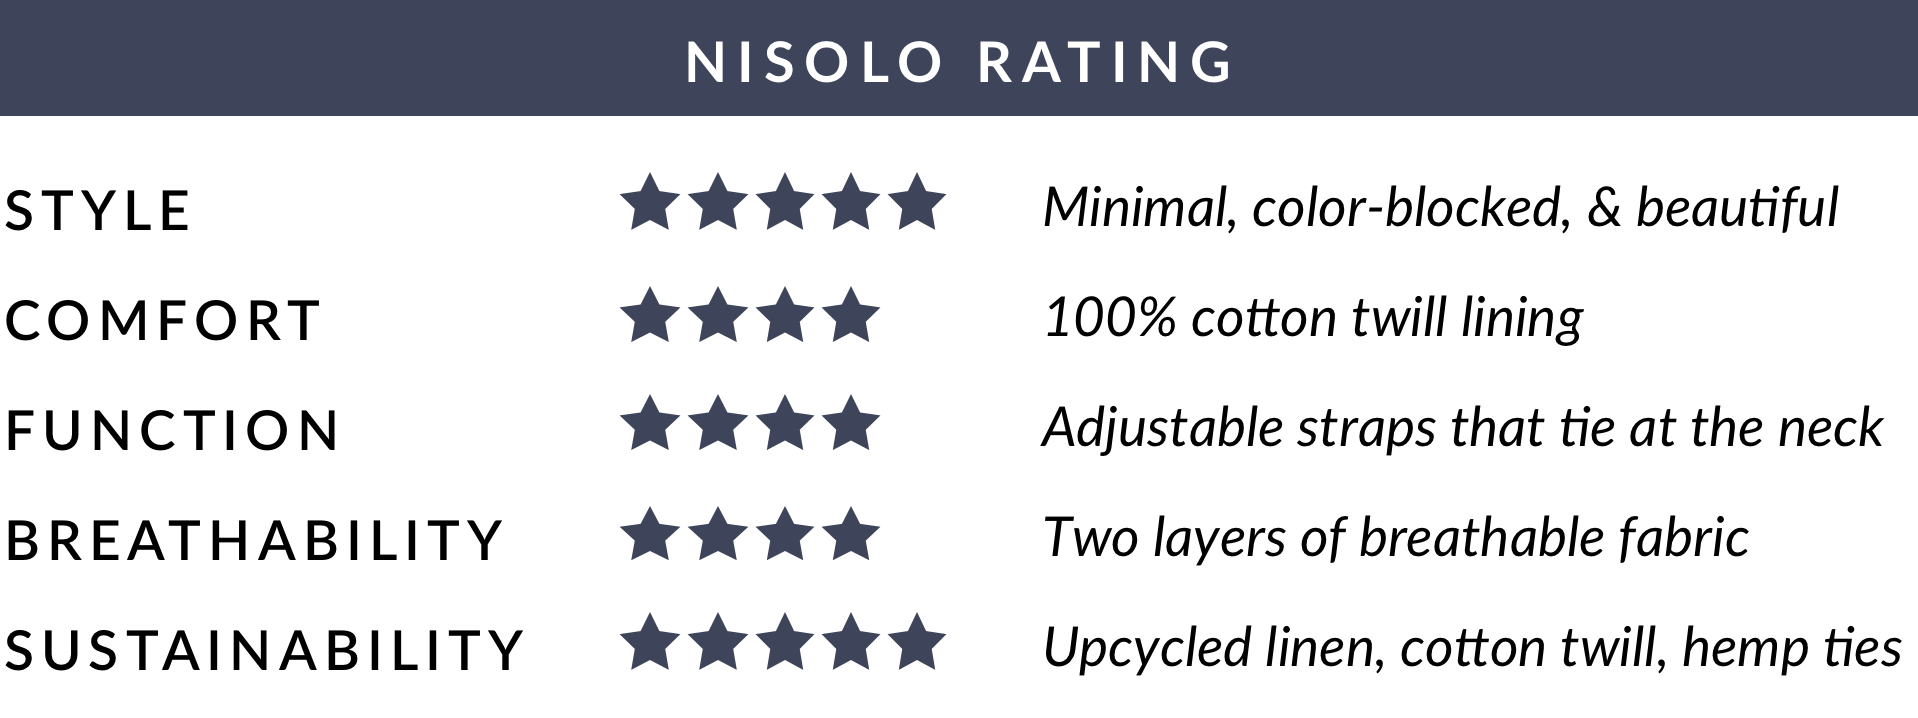 Nisolo Rating of EMLEE Upcycled Linen & Cotton Lined Mask - Lavender/Sand - 4 out of 5 stars